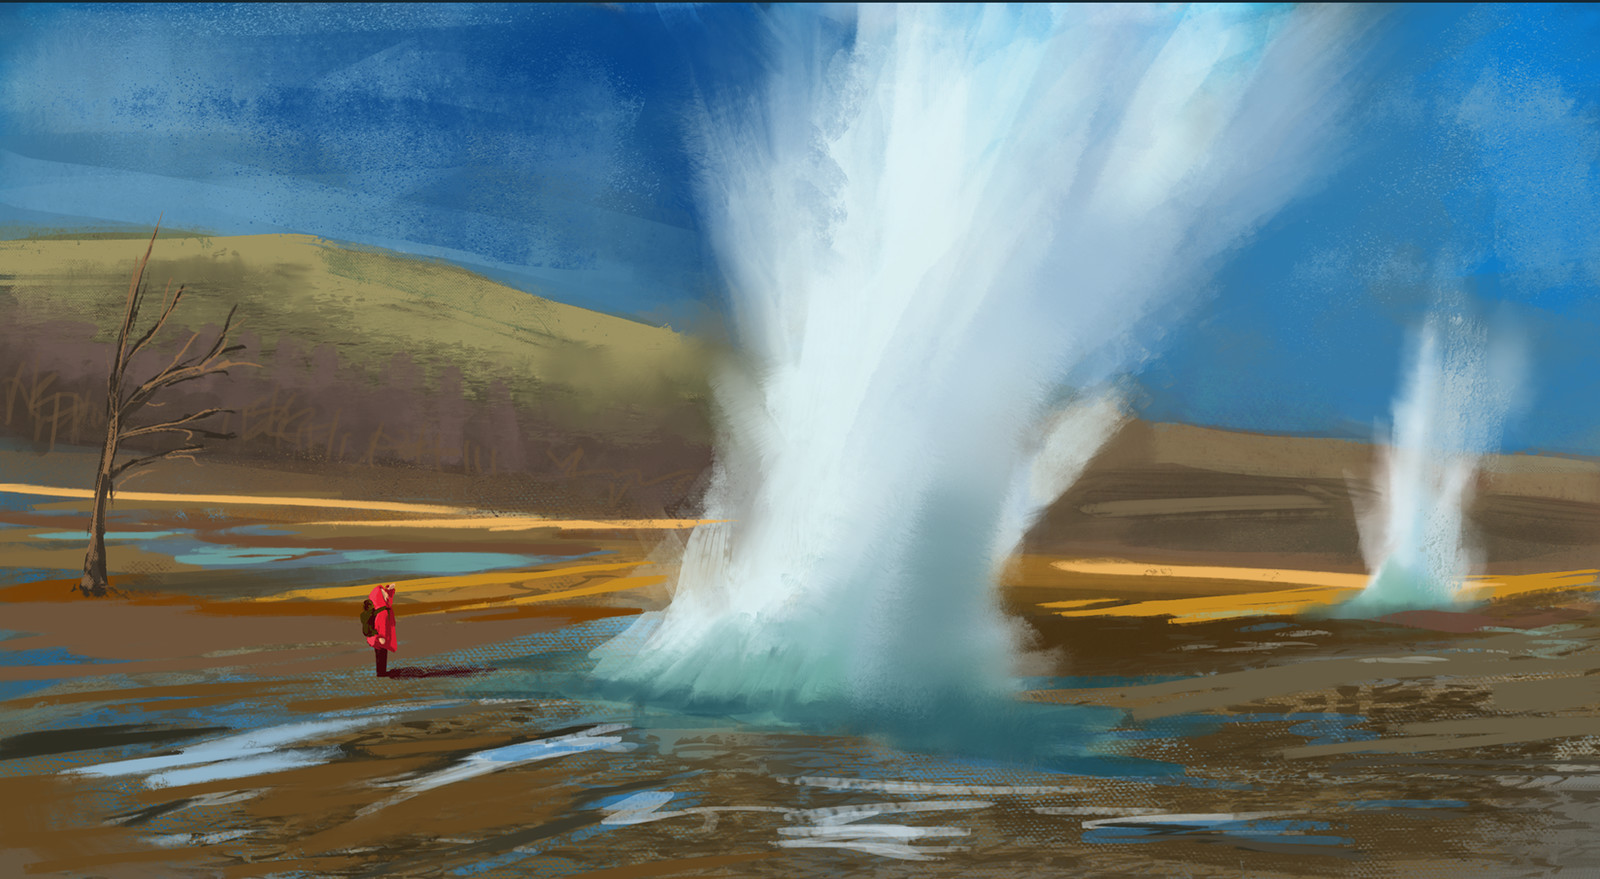 Geyser Study and Brush efficiency